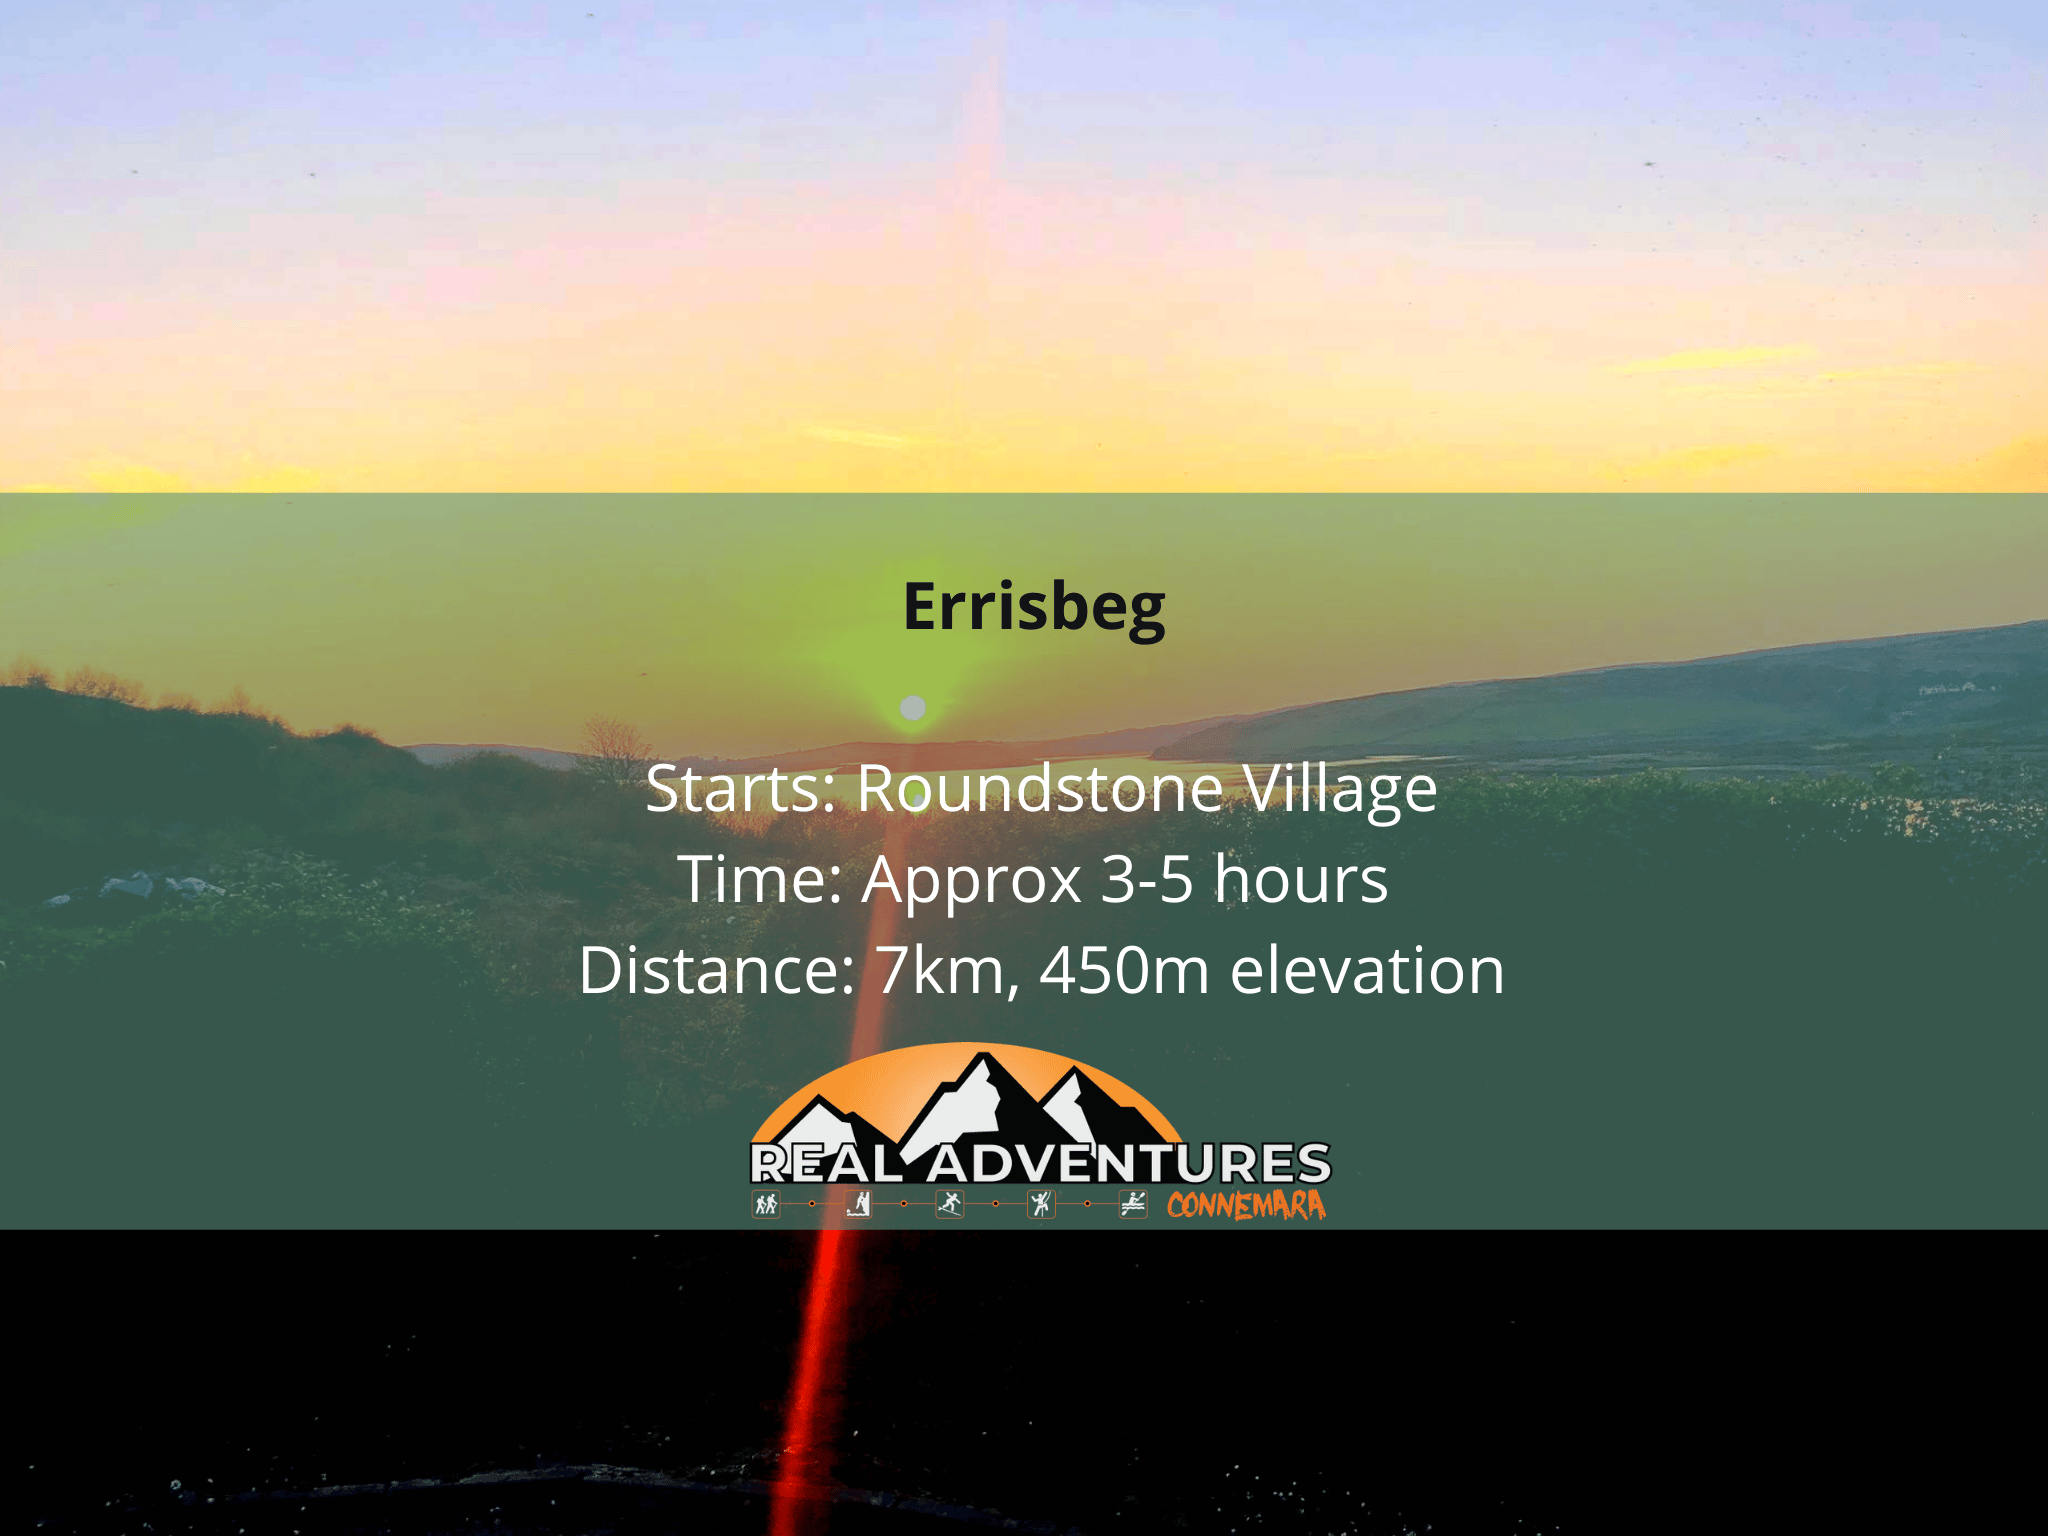 sunset image with Errisbeg walk details in the text box